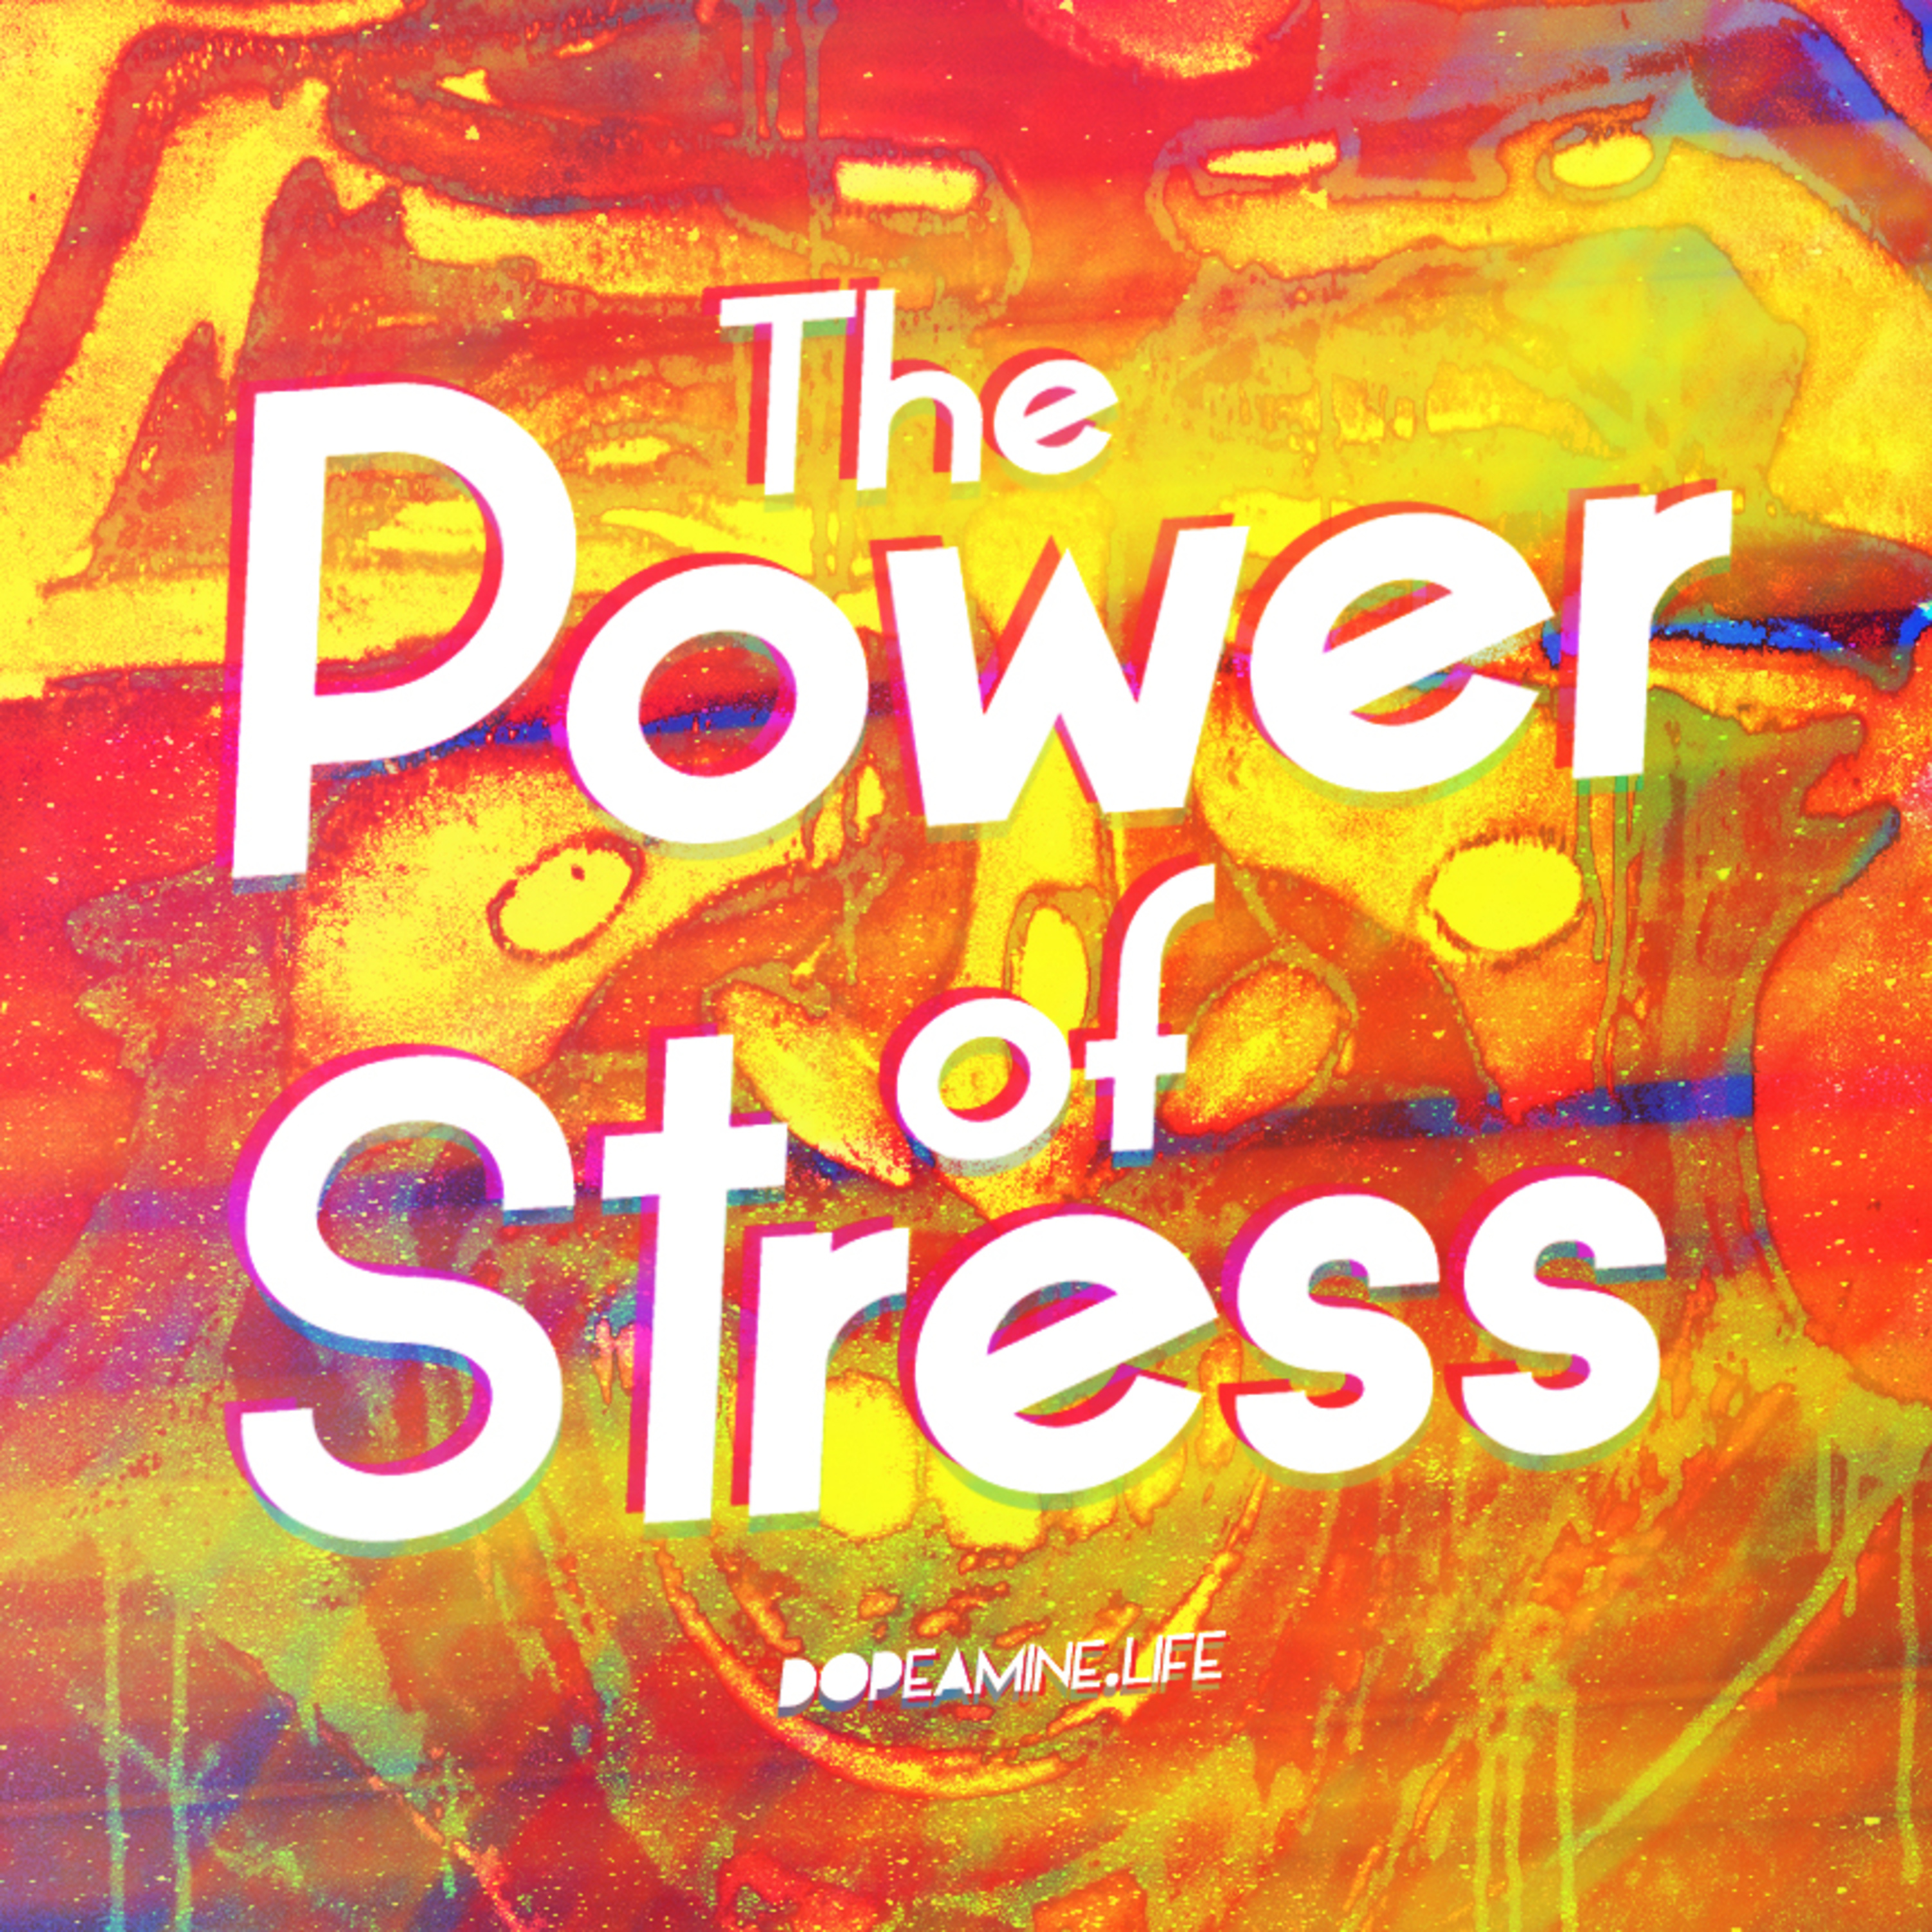 The Power of Stress